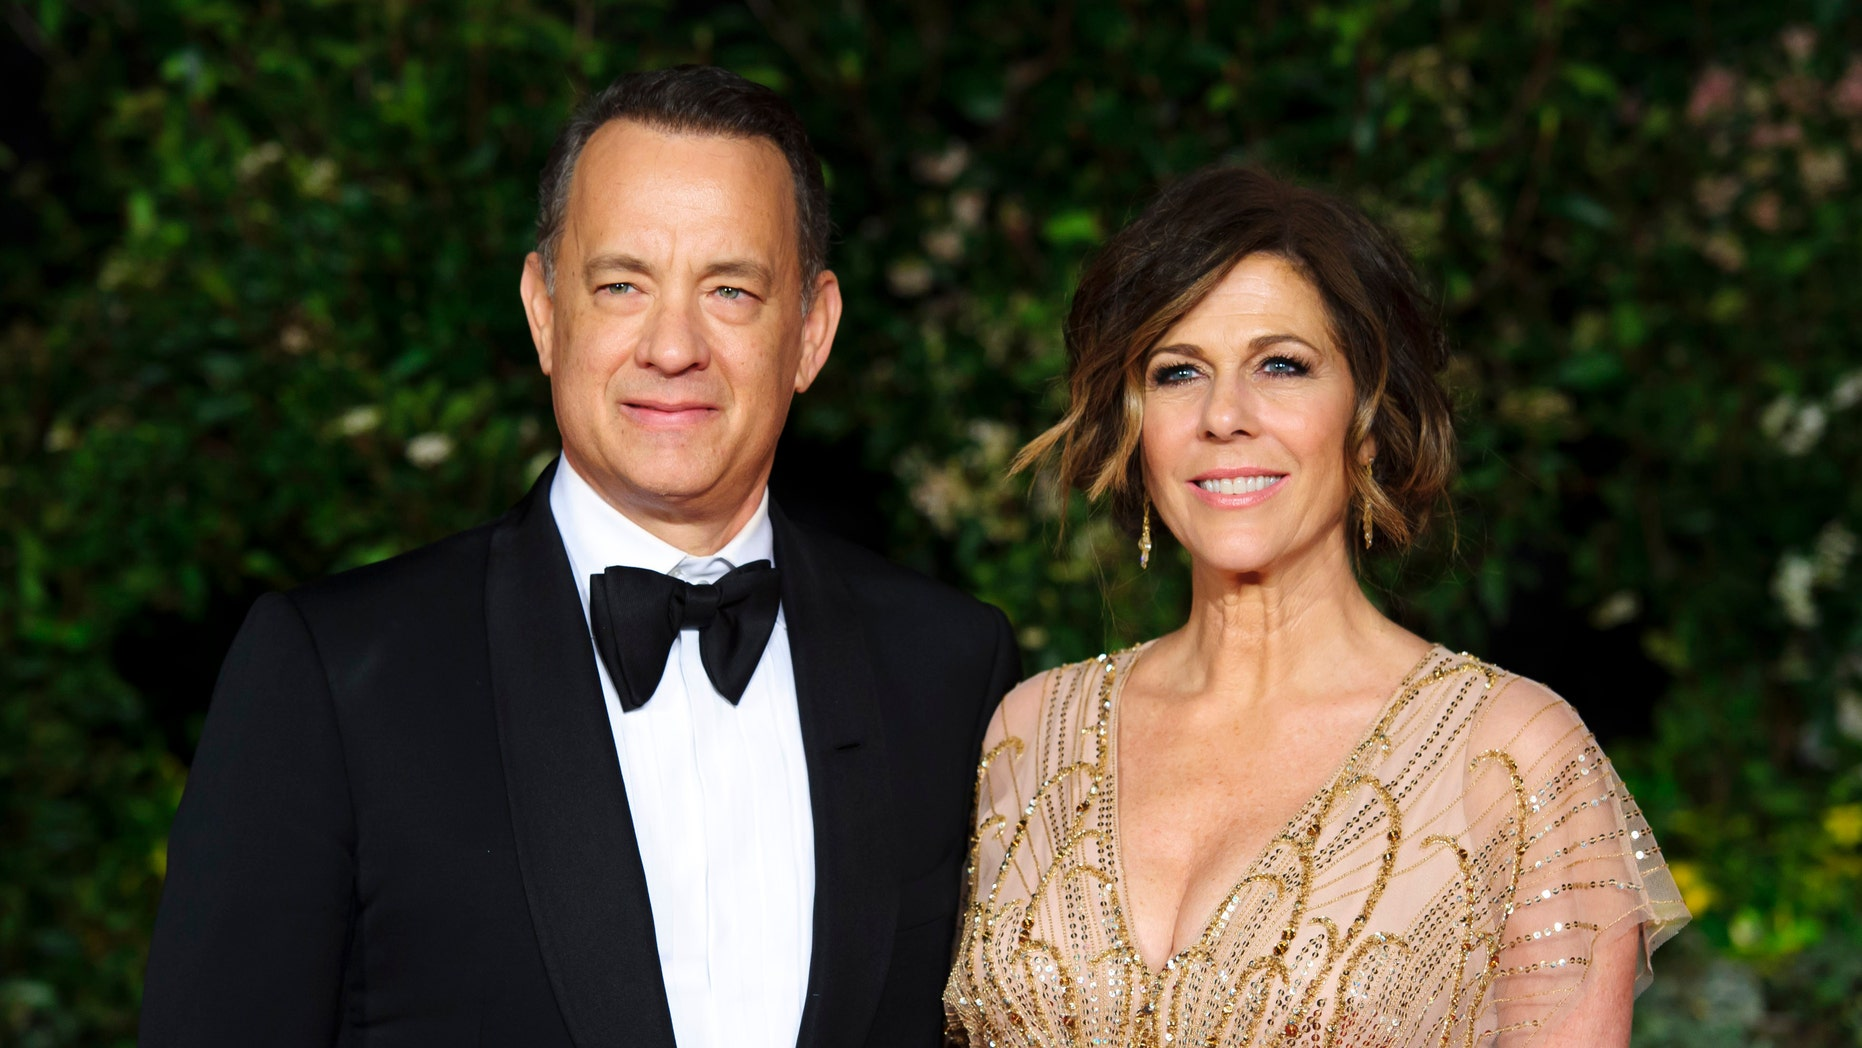 Feb. 16, 2014. Tom Hanks and Rita Wilson arrive for the British Academy Film Awards 2014 After Party at the Grosvenor Hotel, in central London.